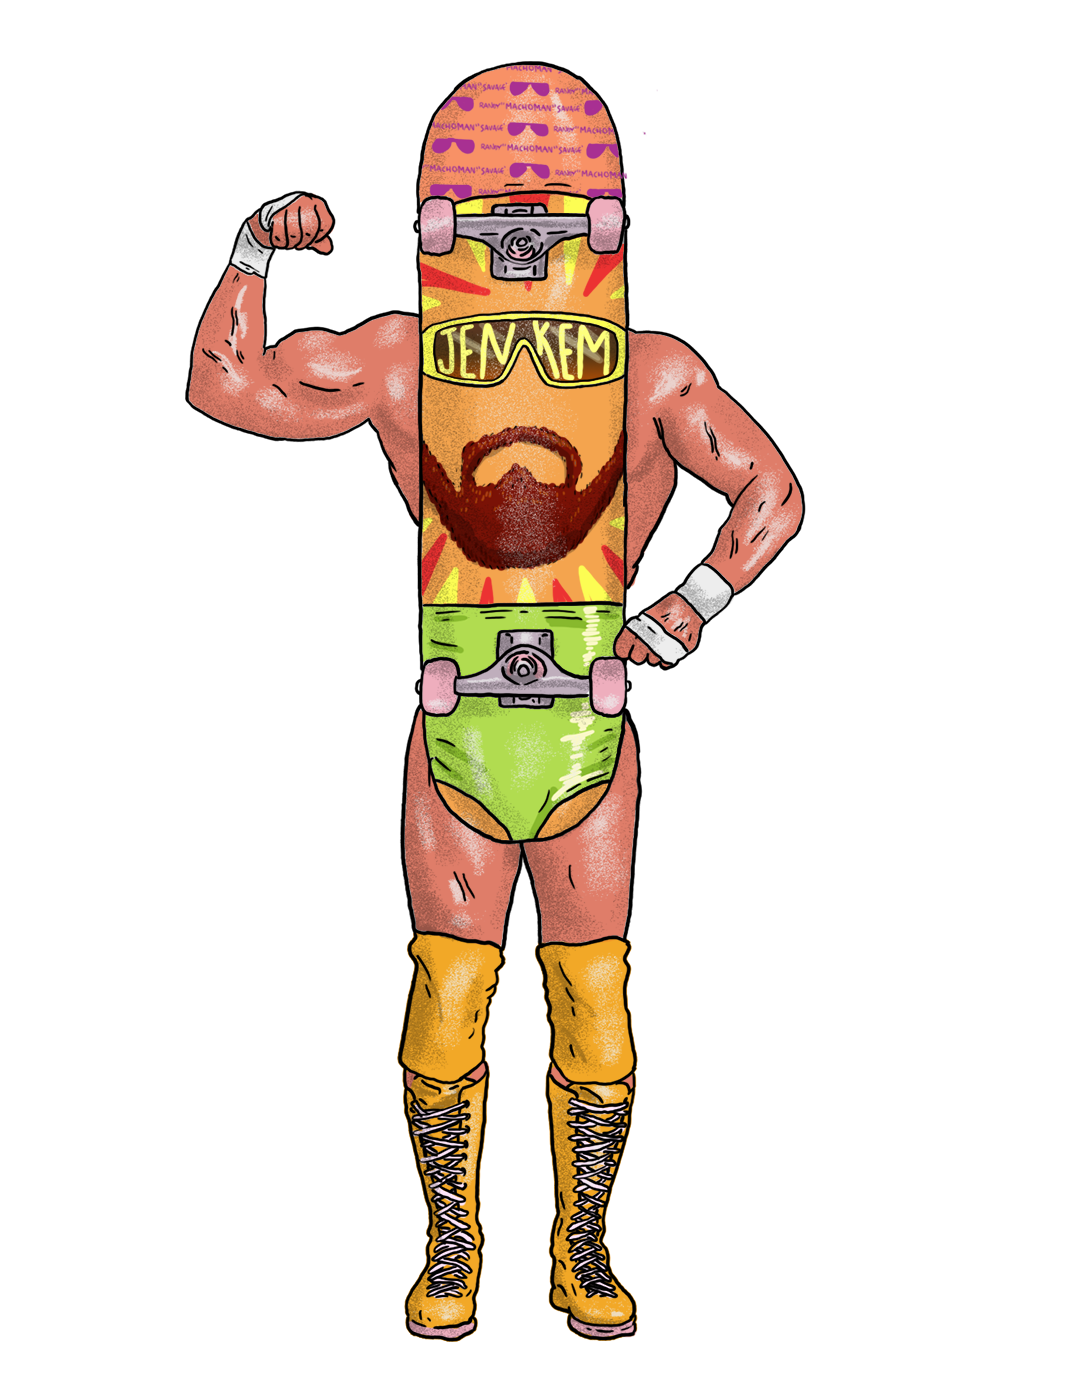 Little boy dressed as professional wrestler cartoon clipart image royalty free library CREATING REALITIES: COMPARING PRO SKATEBOARDING TO PRO WRESTLING ... image royalty free library